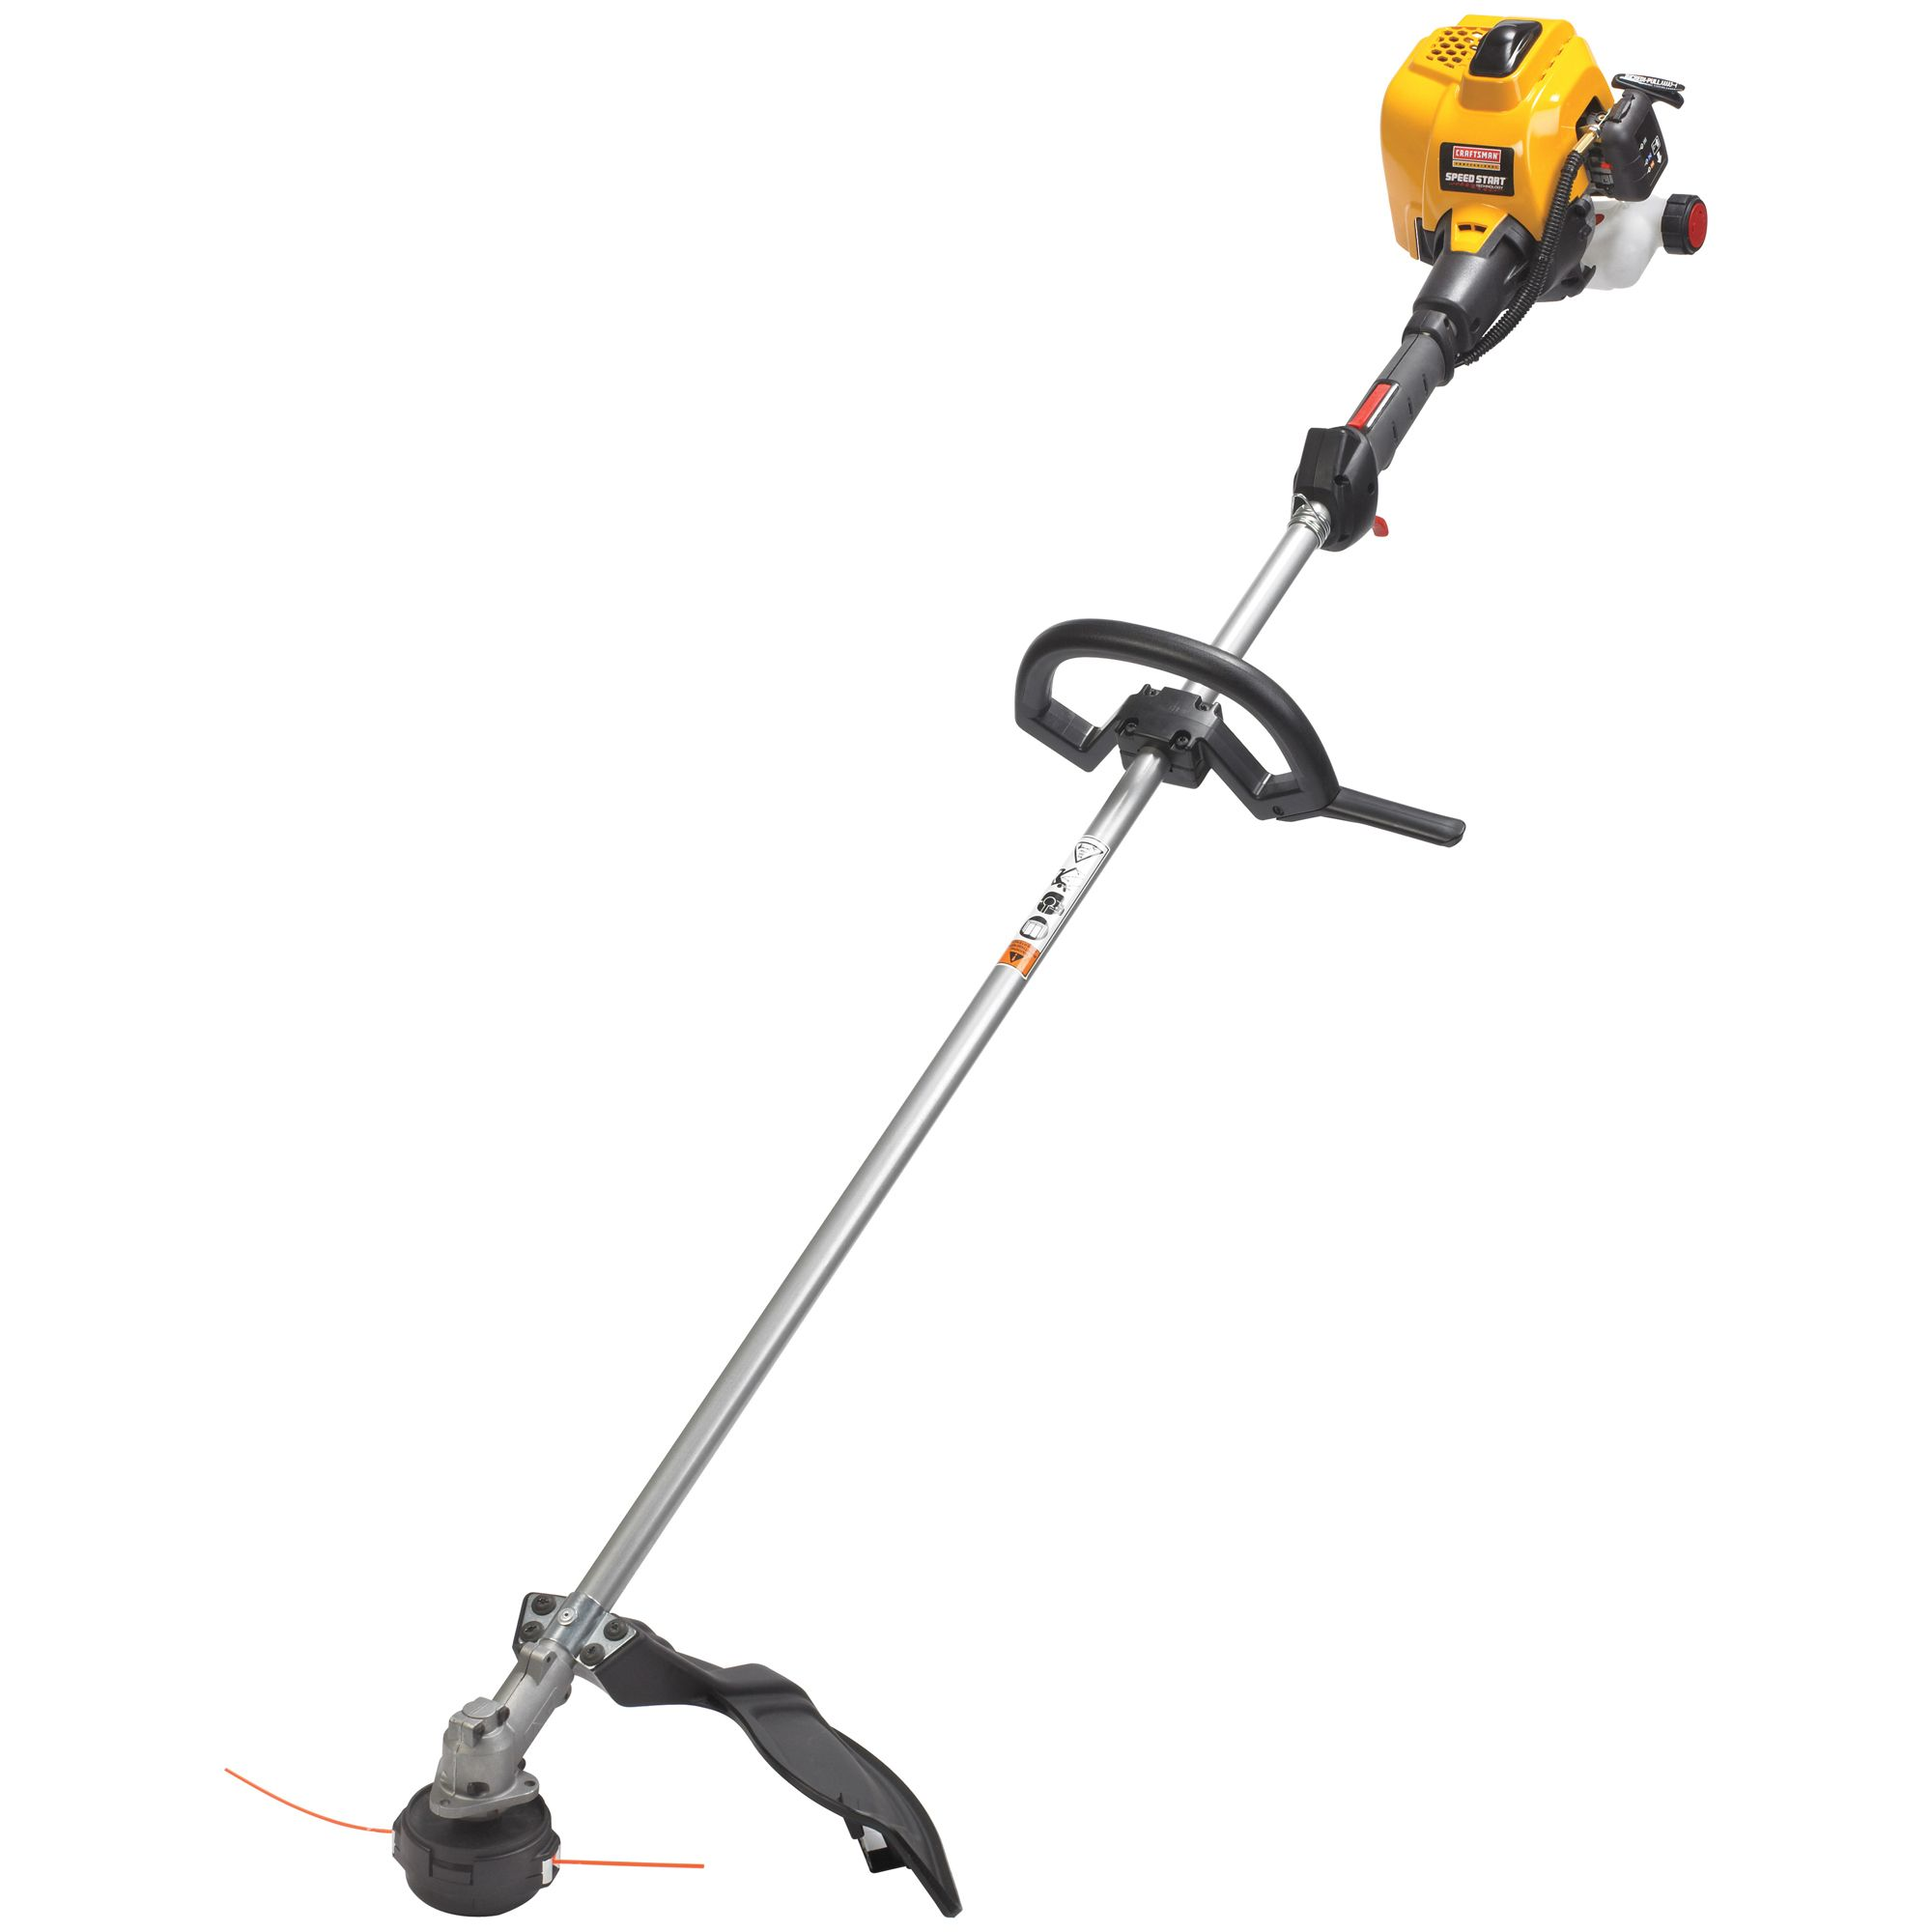 27cc 2-Cycle Straight Gas Trimmer                                                                                                at mygofer.com